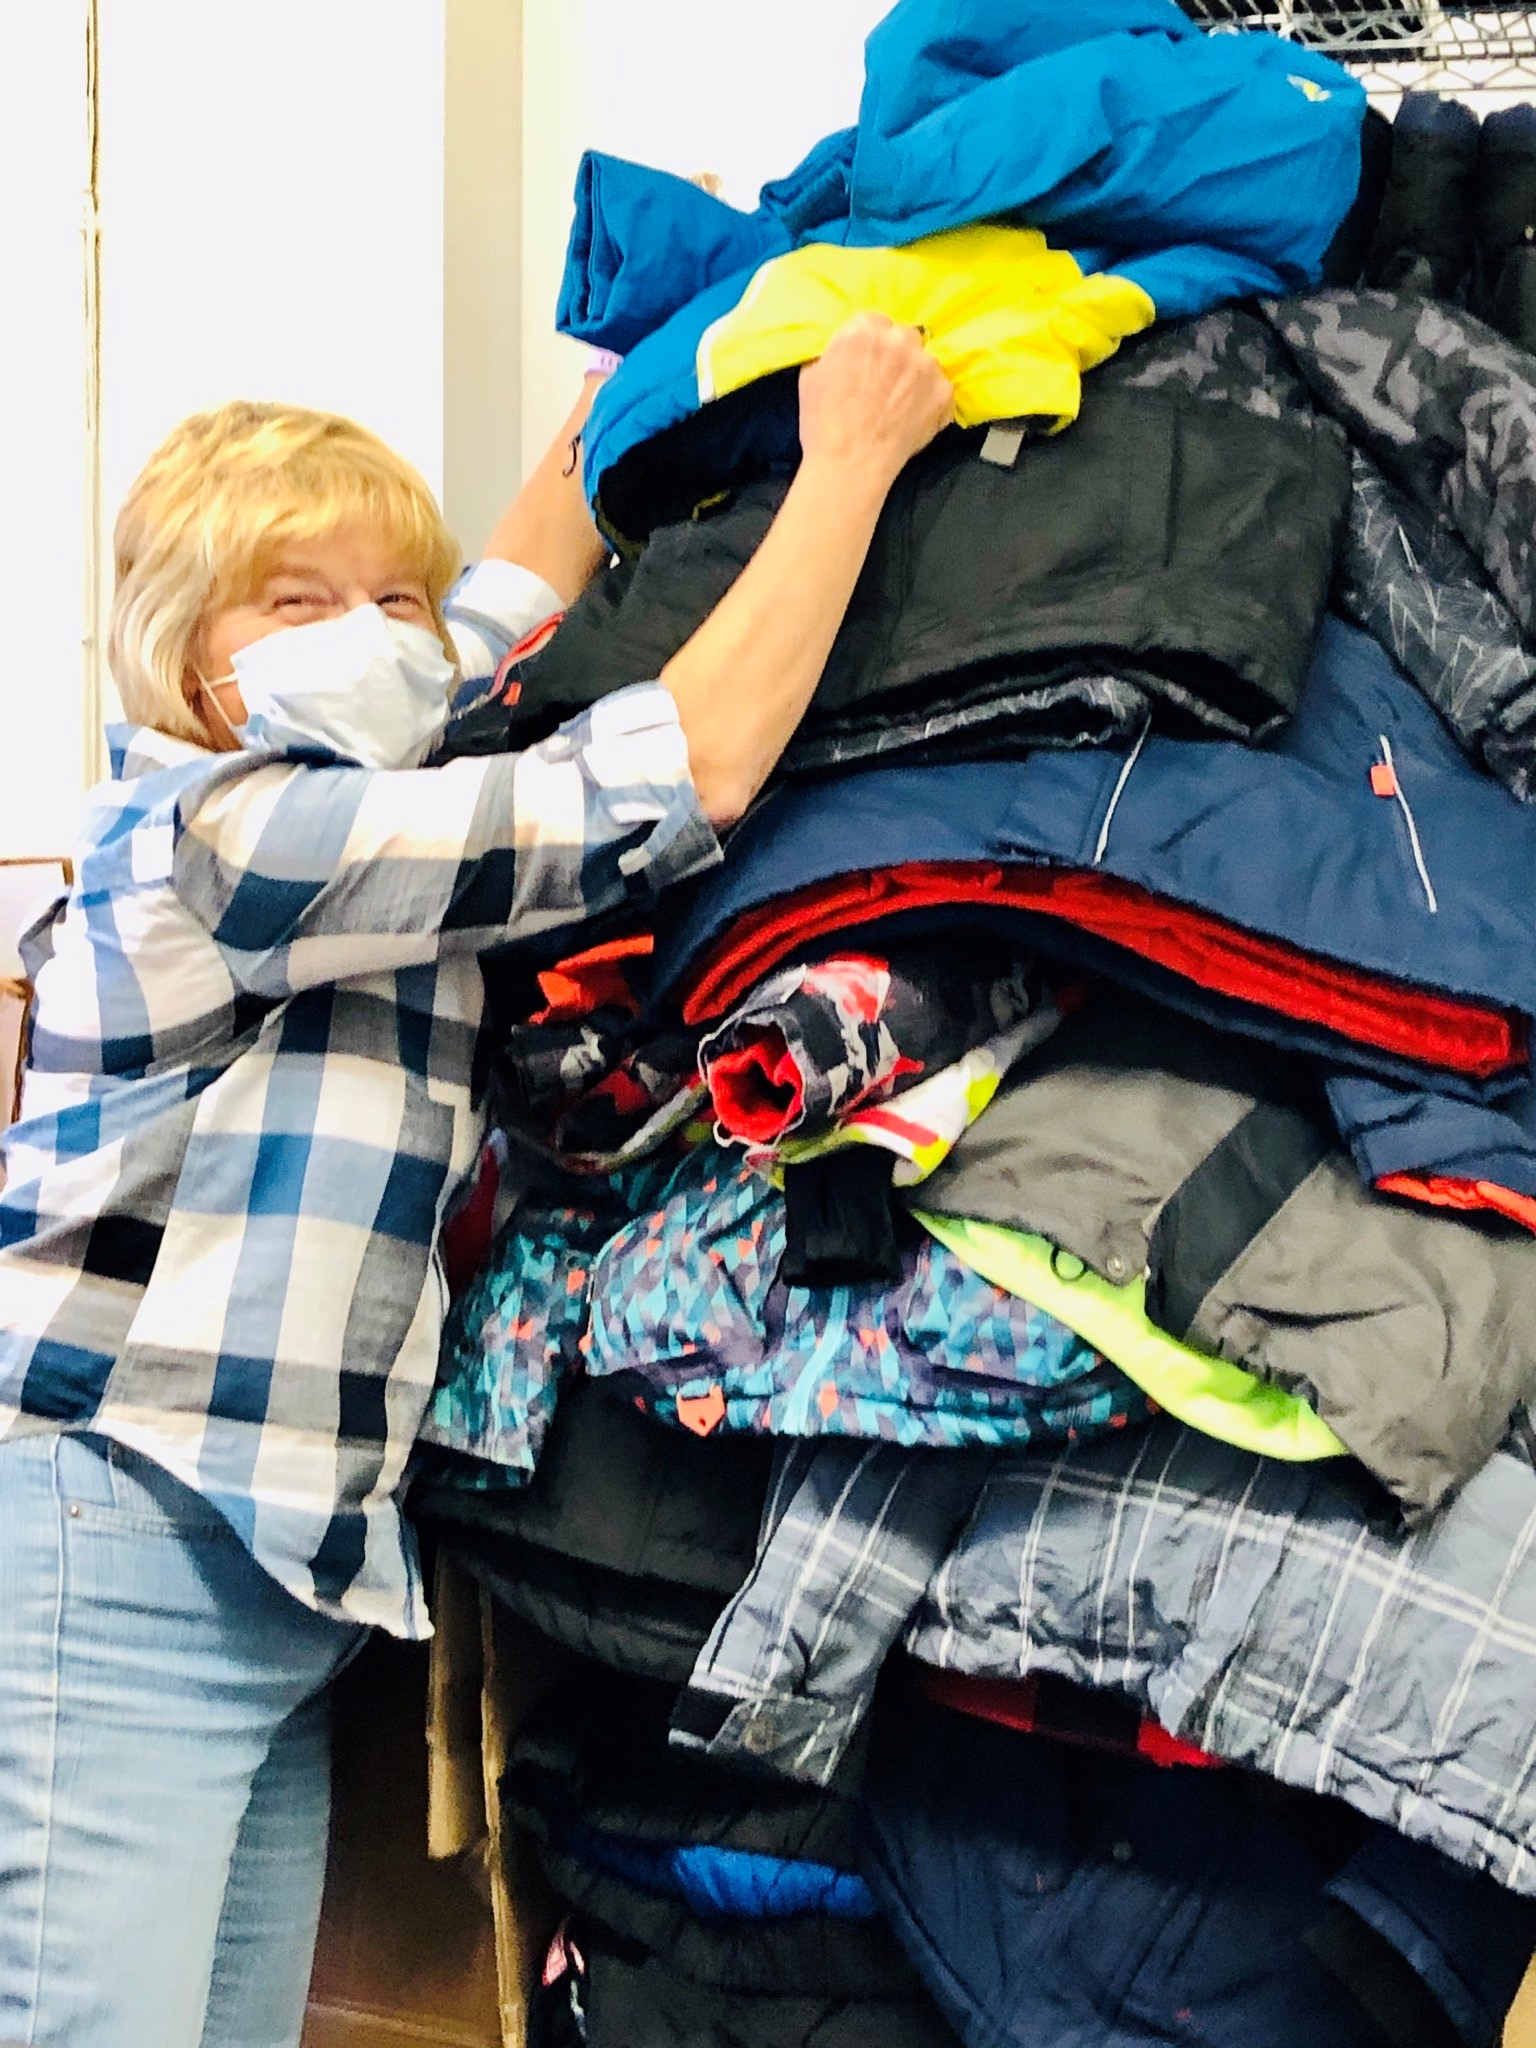 What's Next volunteer sorting a mountain of donated coats.